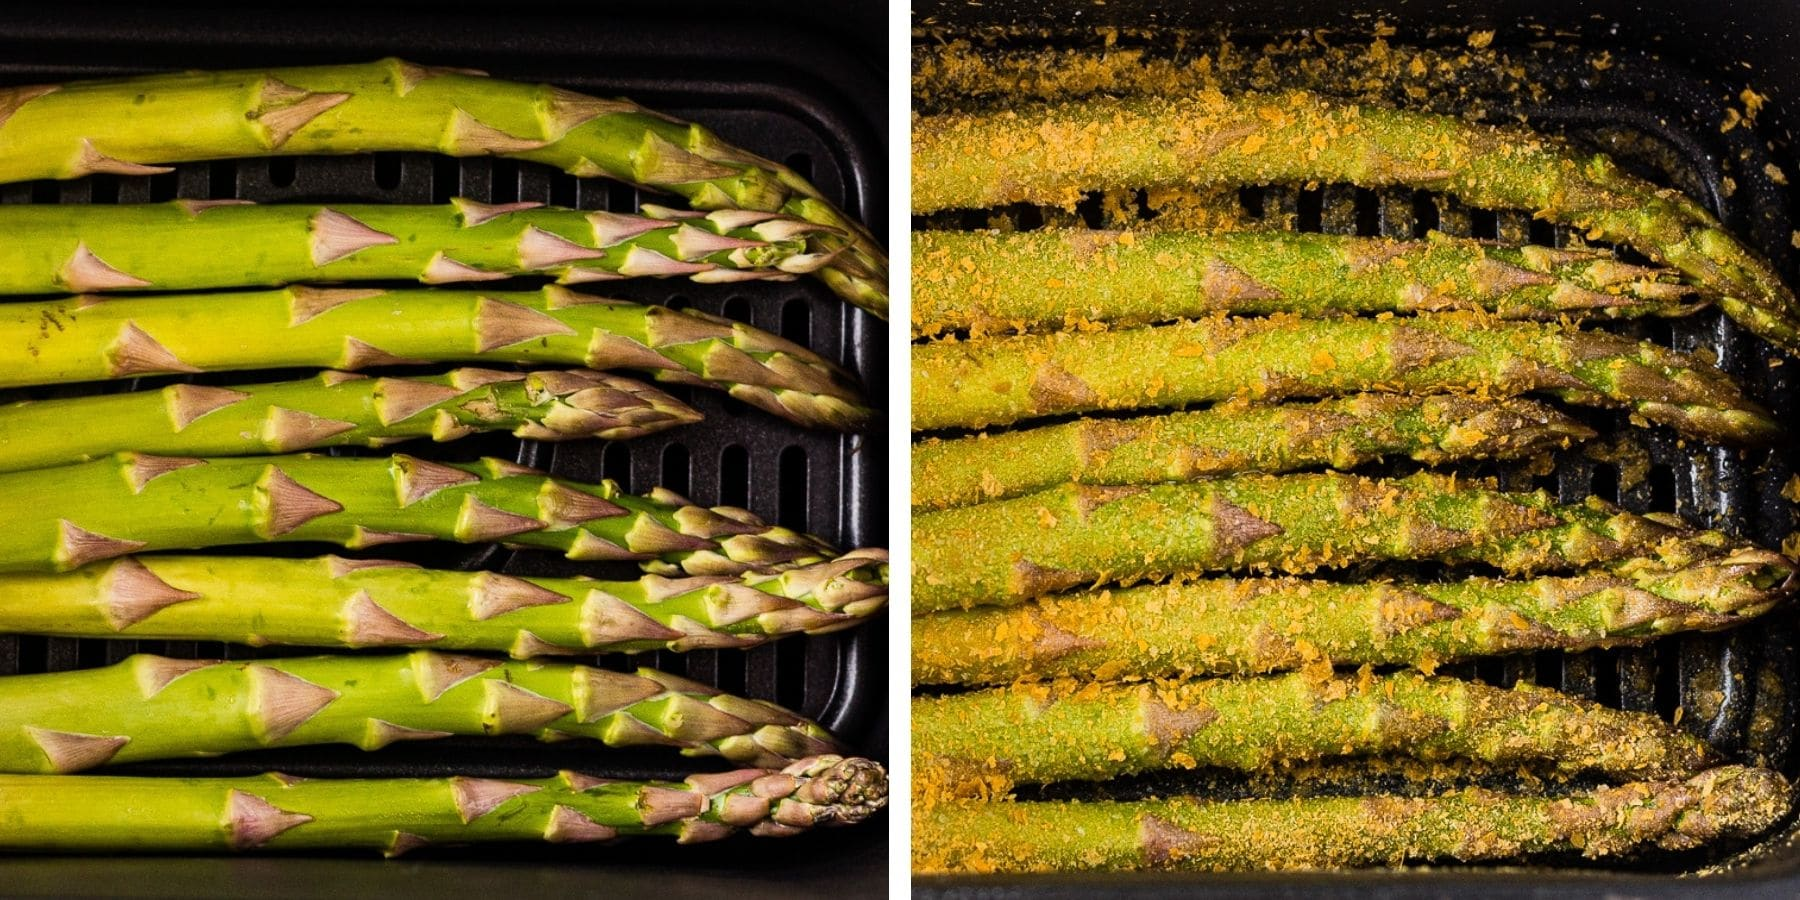 before and after images of air fryer asparagus before its cooked and after